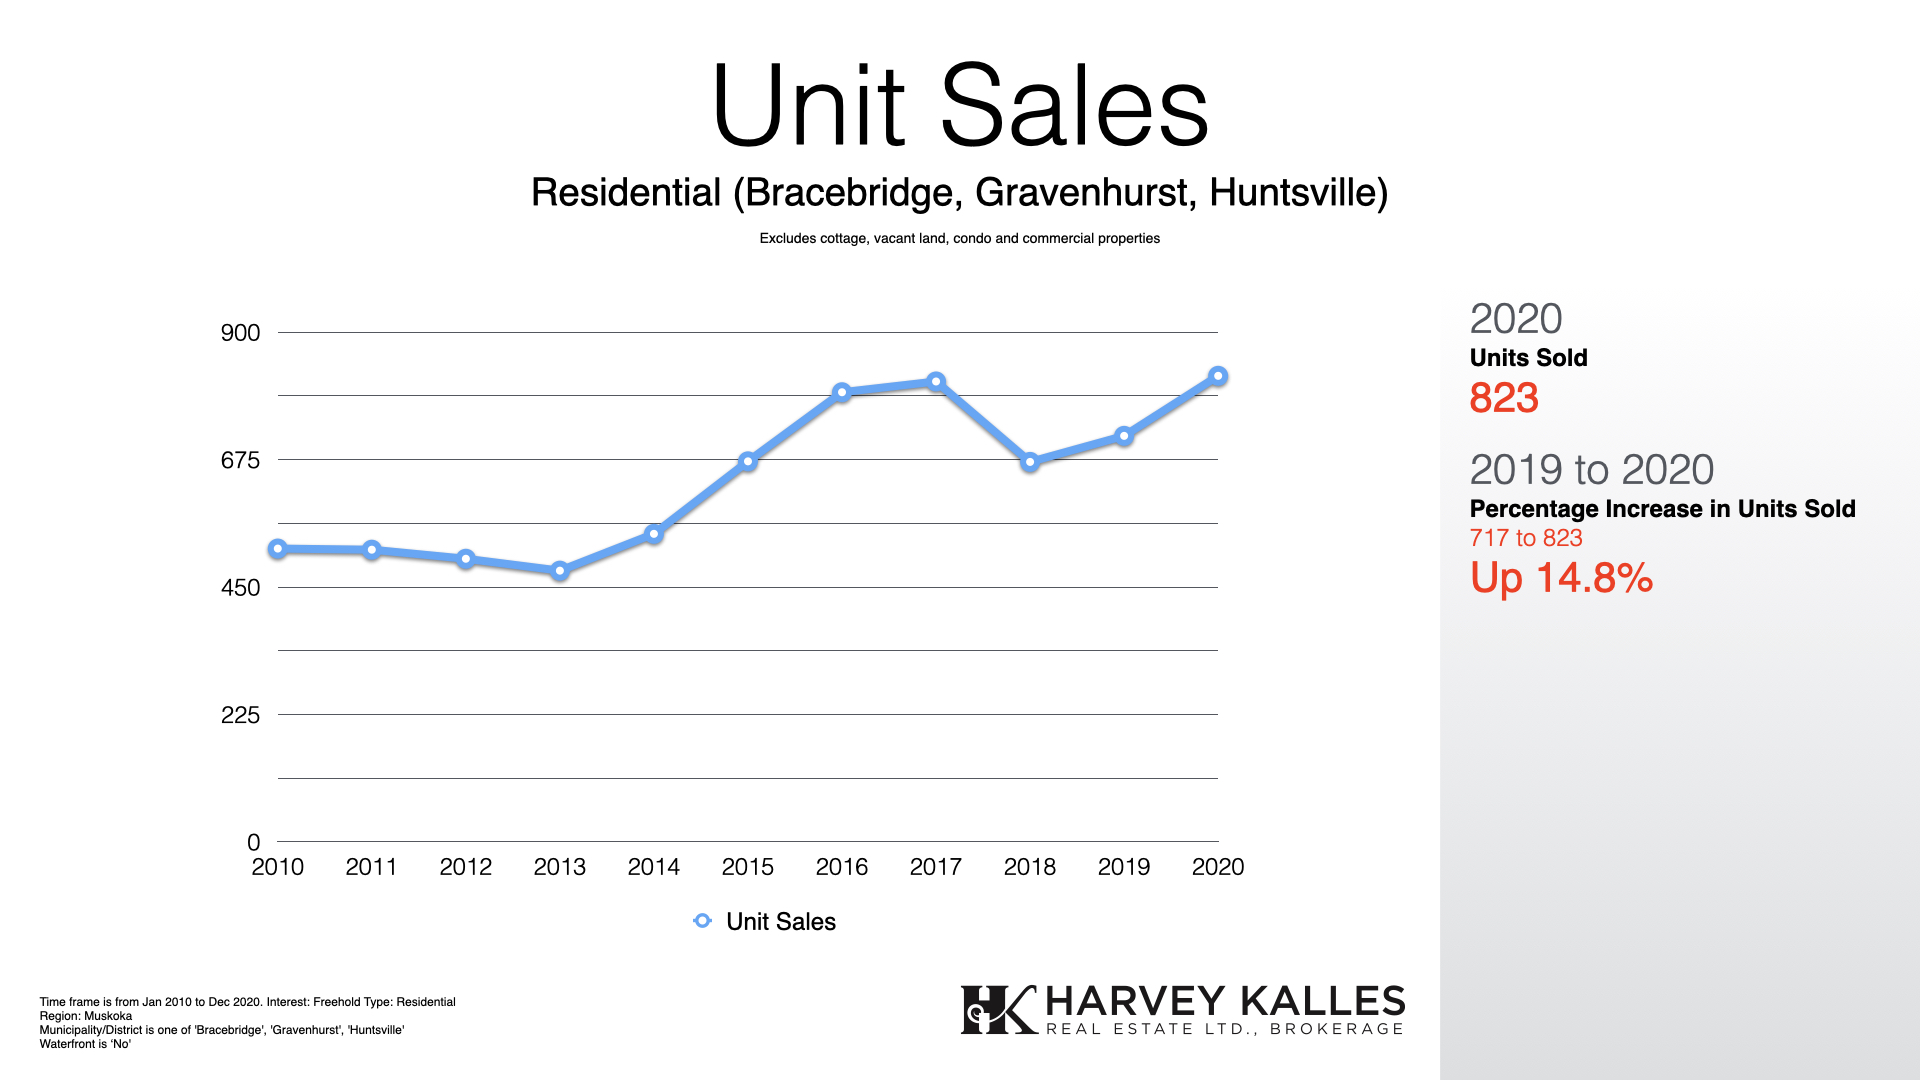 Muskoka Residential Real Estate Units Sold